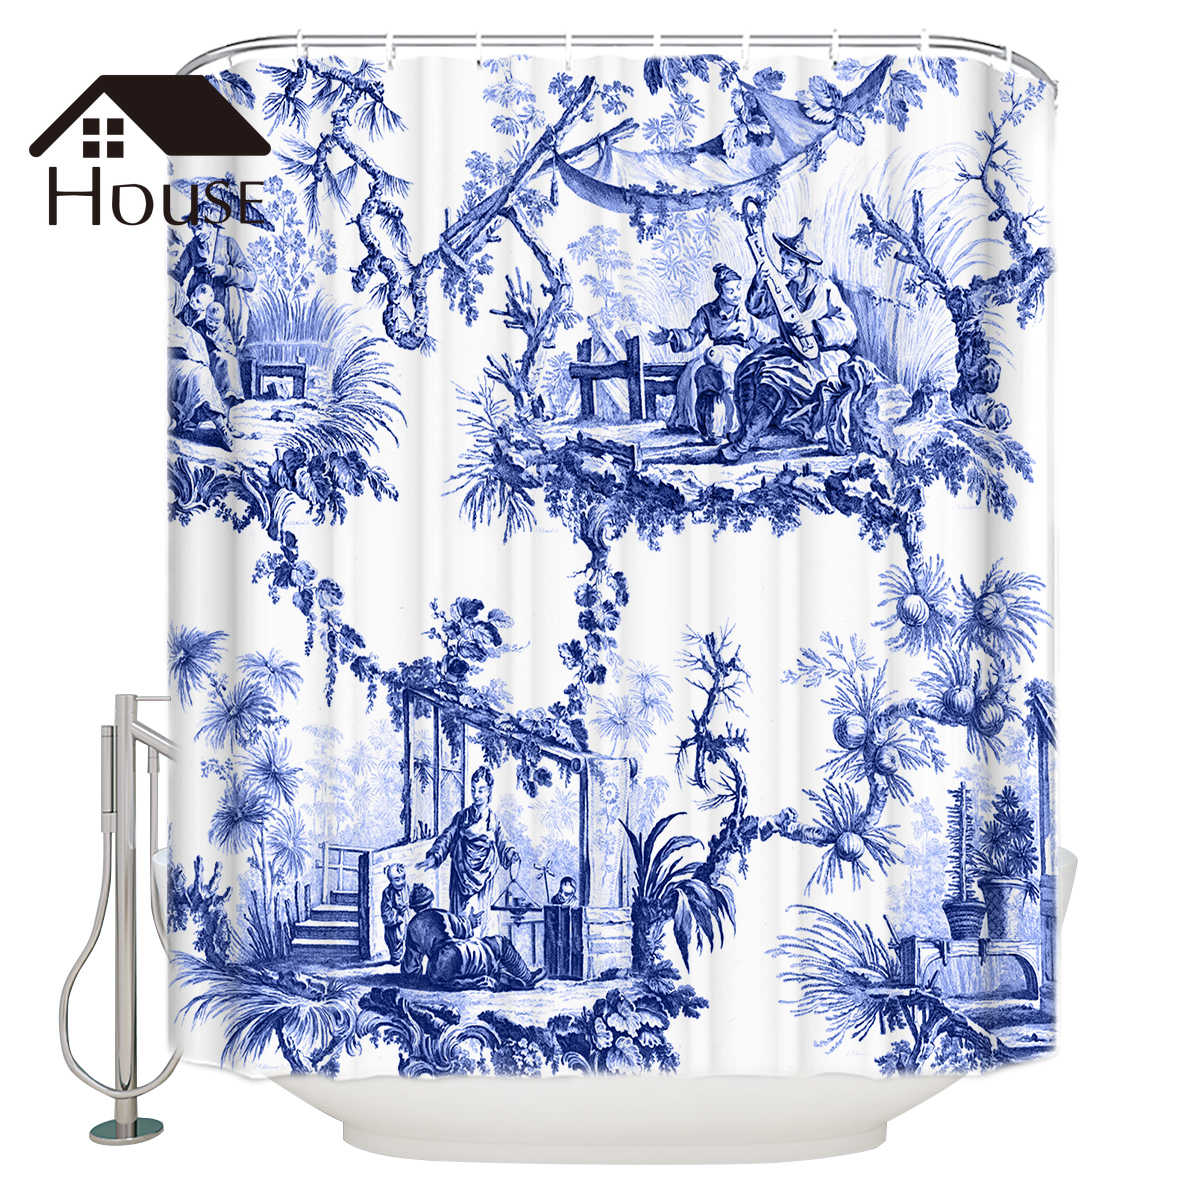 BIGHOUSES Shower Curtain  Blue Chinoiserie Toile  Fabric Shower Curtain  Bathroom Decor with Hooks